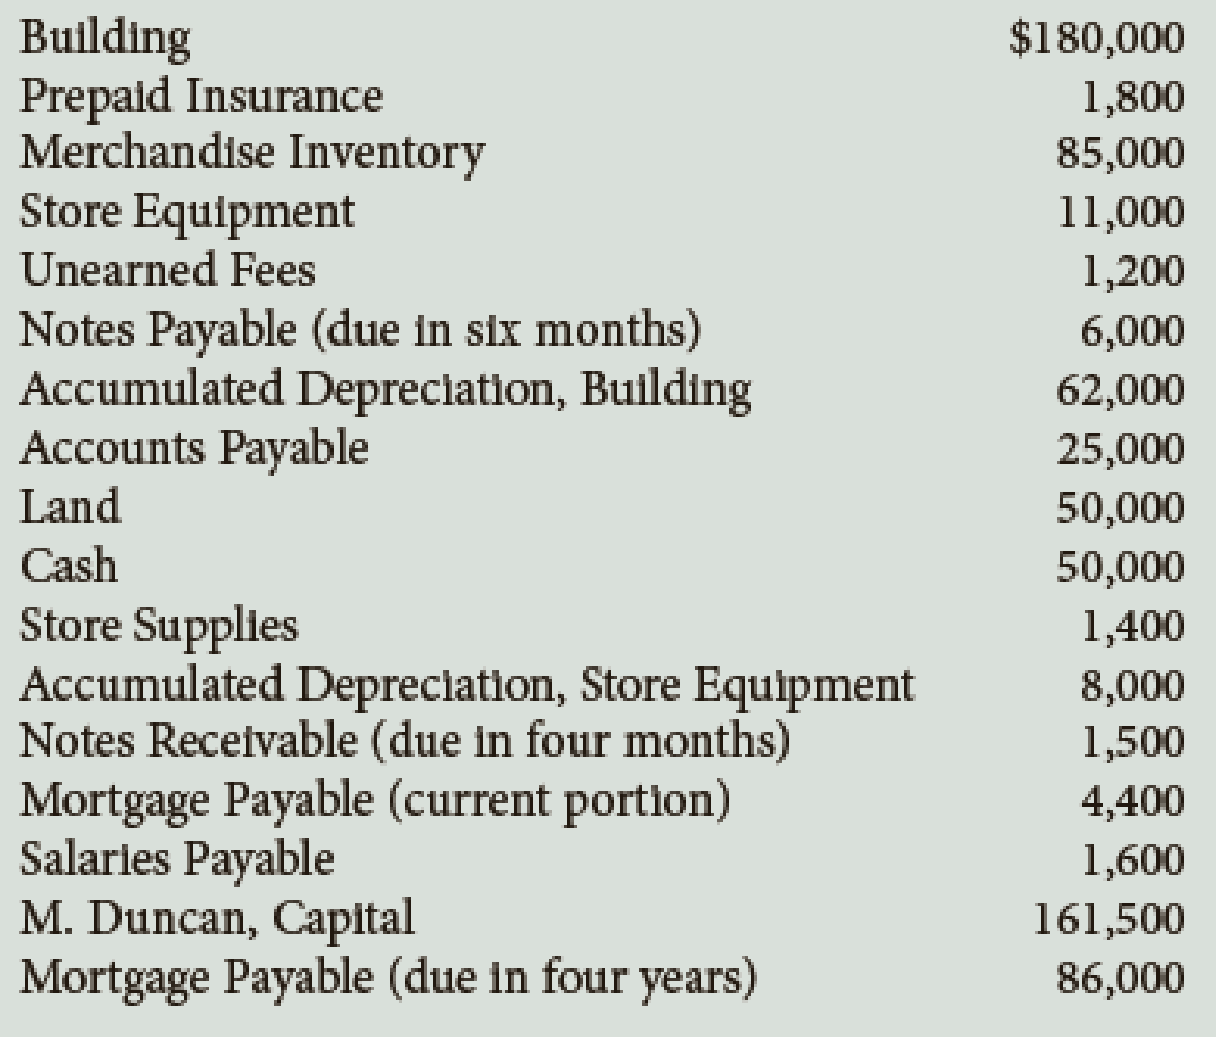 Chapter 12, Problem 6E, On December 31, 20--, the following selected accounts and amounts appeared on the balance sheet for